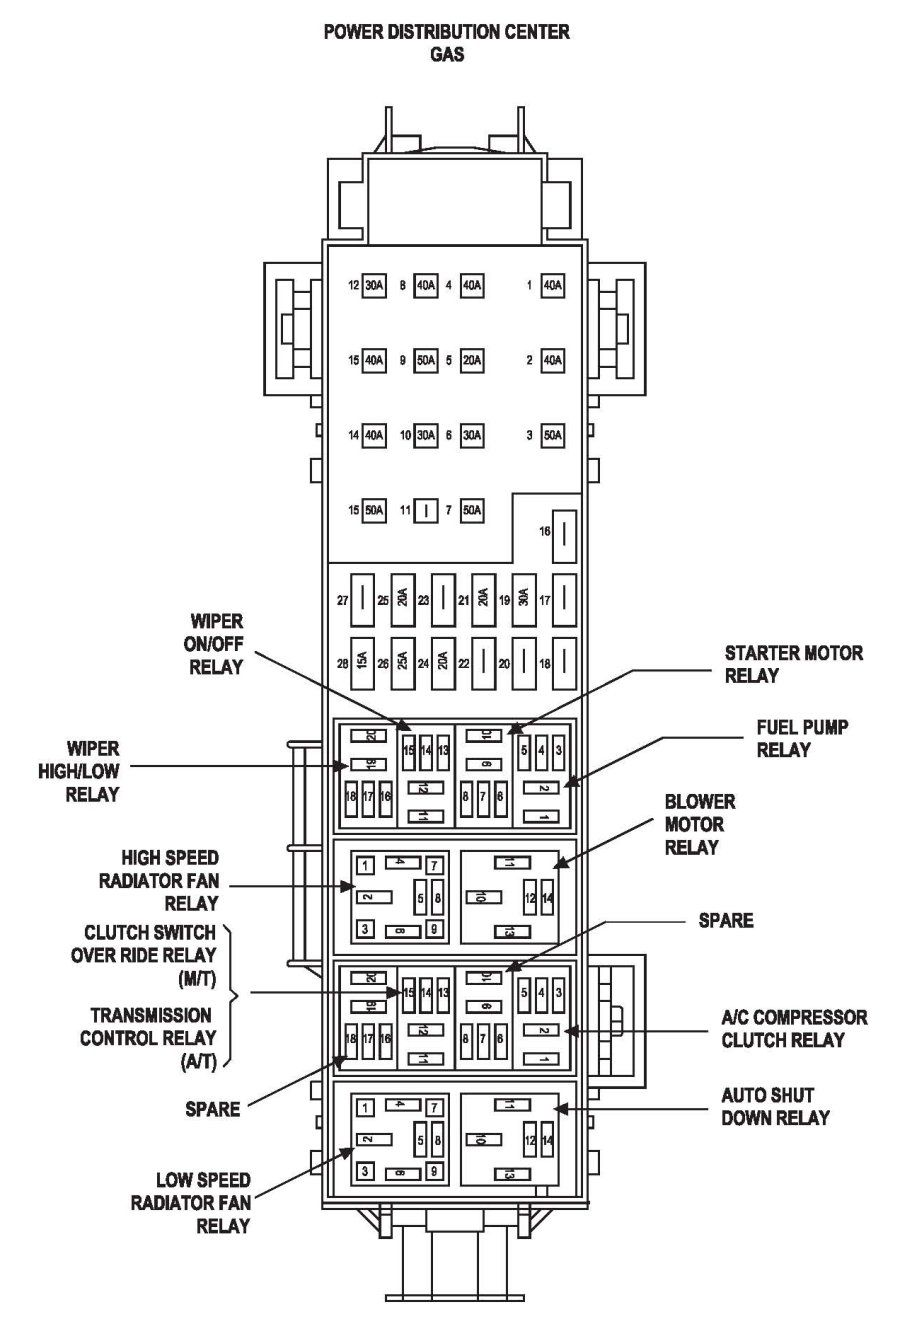 jeep liberty fuse box diagram image details jeep liberty rh pinterest com 1999 ford f150 fuse [ 900 x 1336 Pixel ]